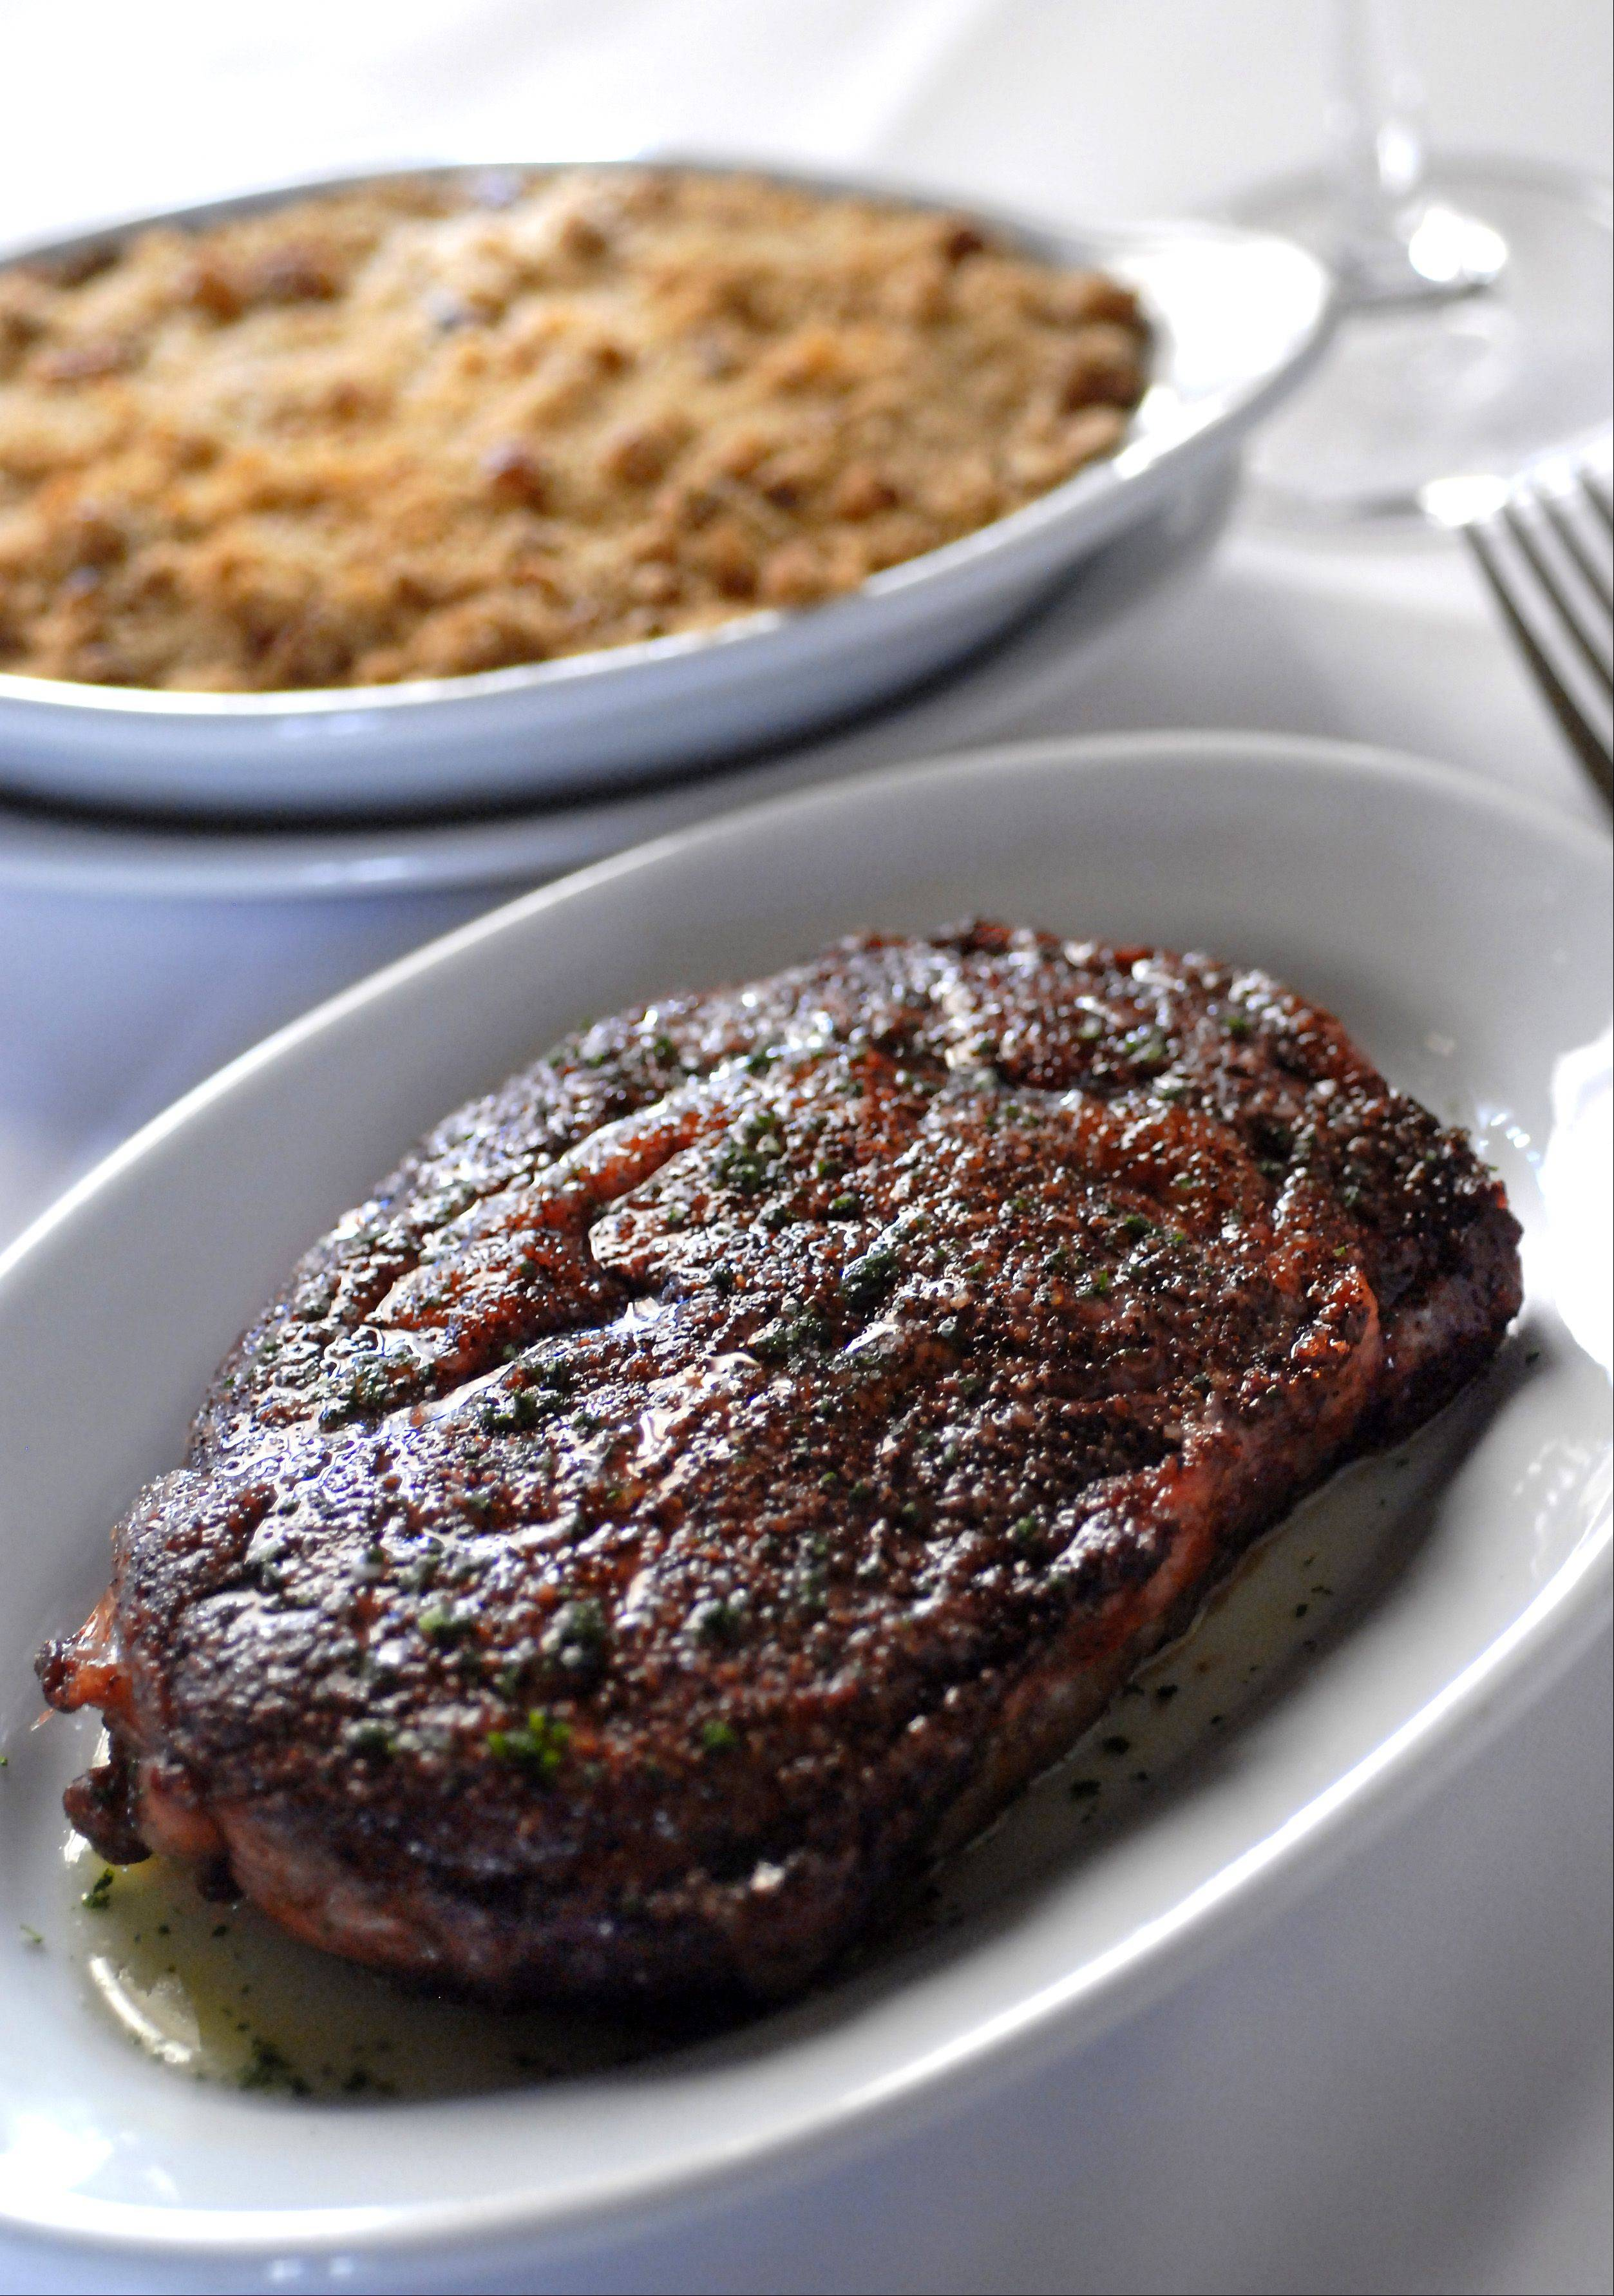 Aged rib-eyes helped earn Ruth�s Chris Steak House a mention on Yahoo�s list of top five steakhouses in the U.S.